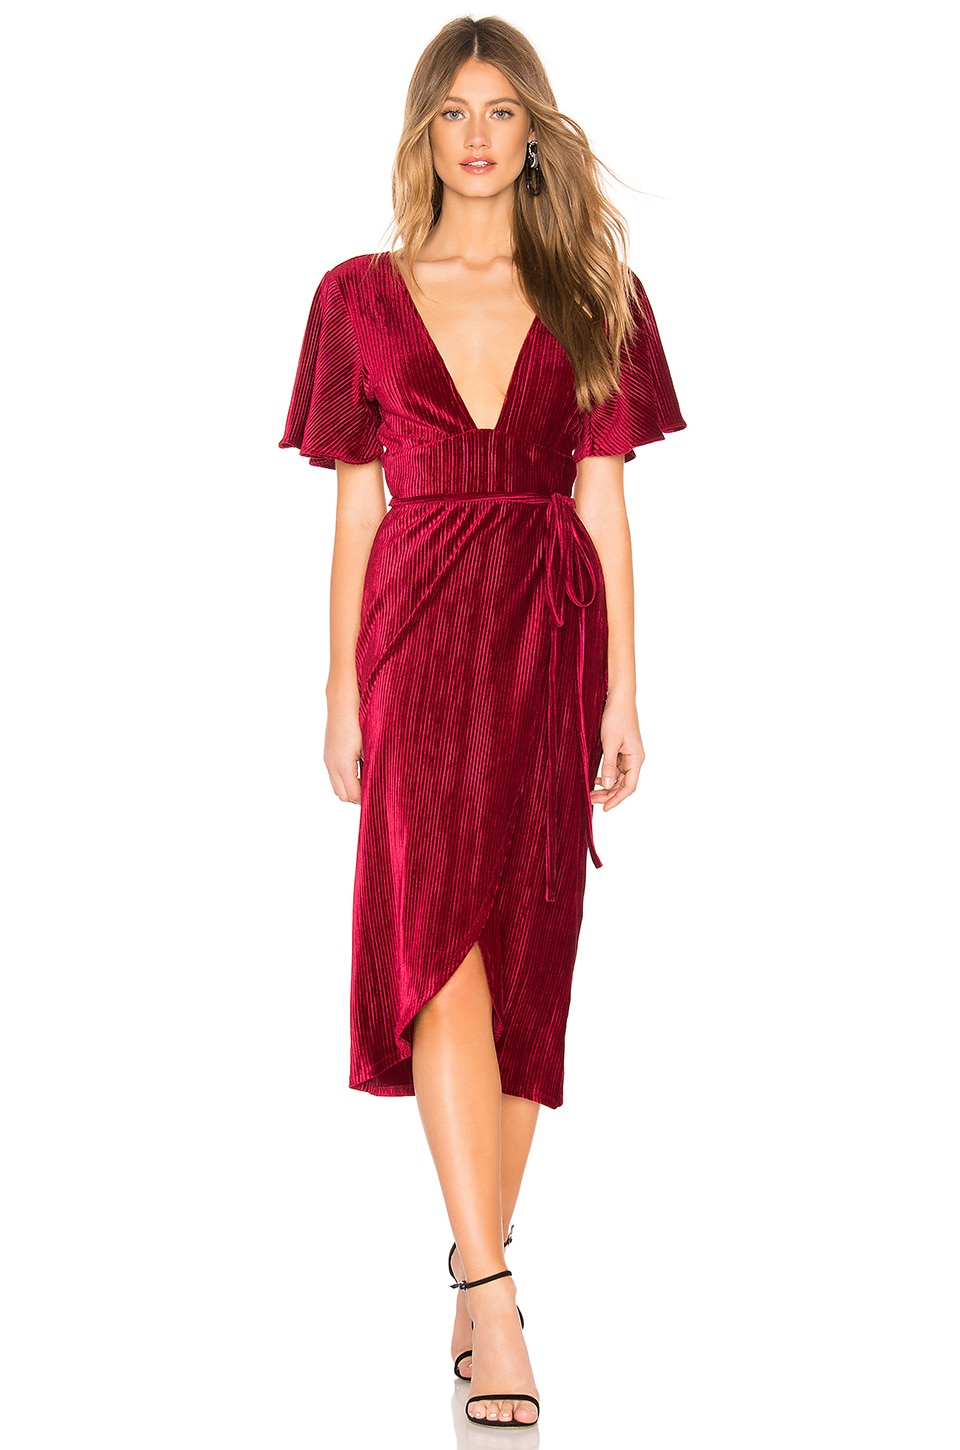 Privacy Please Moore Midi Dress in Burgundy